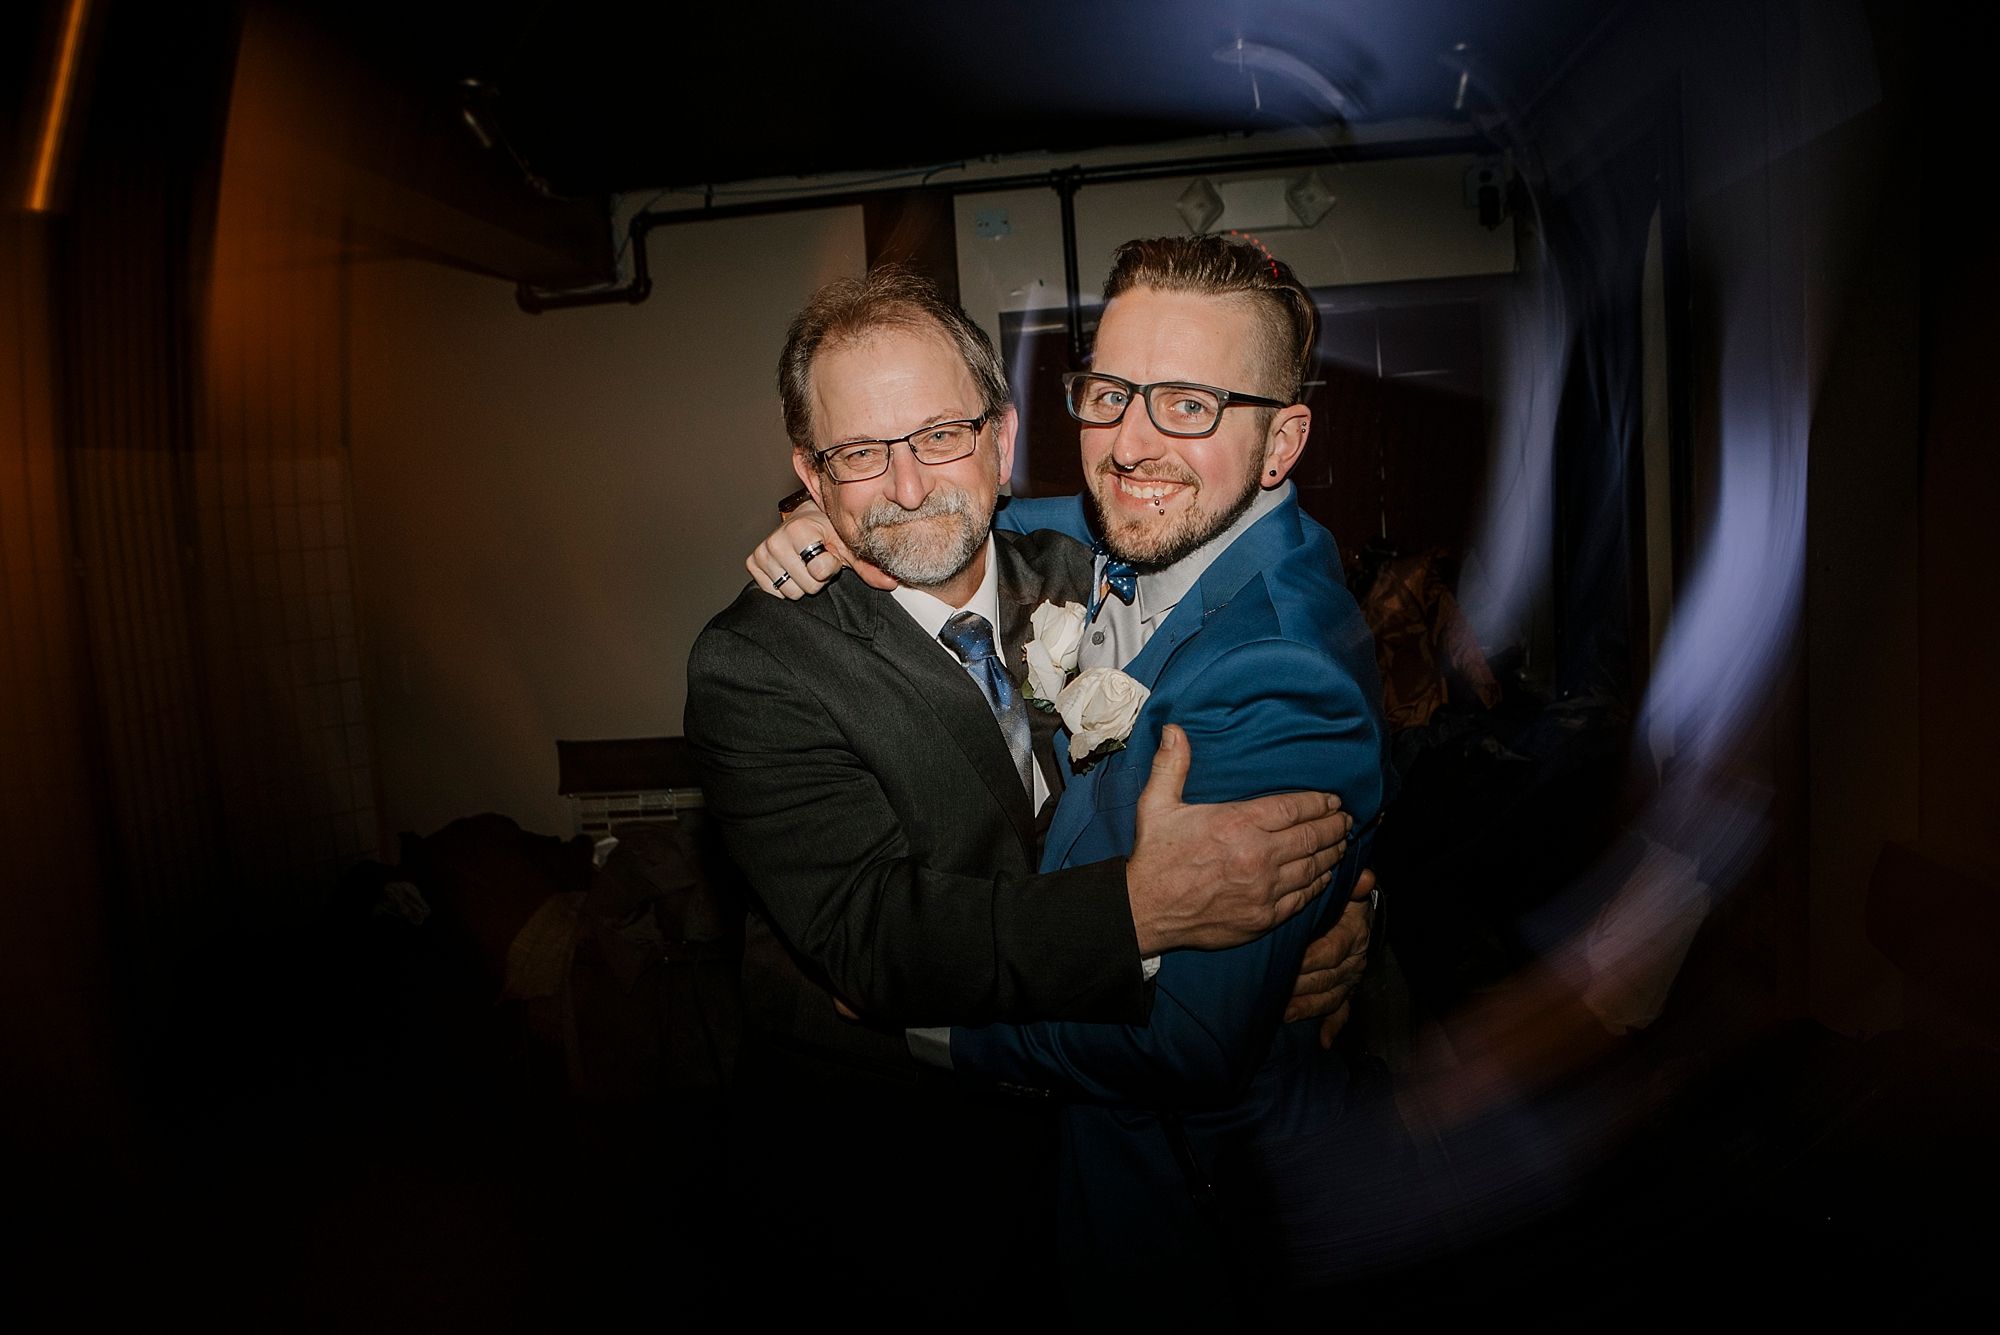 Joe_Mac_Creative_Philadelphia_Philly_LGBT_Gay_Engagement_Wedding_Photography__0164.jpg